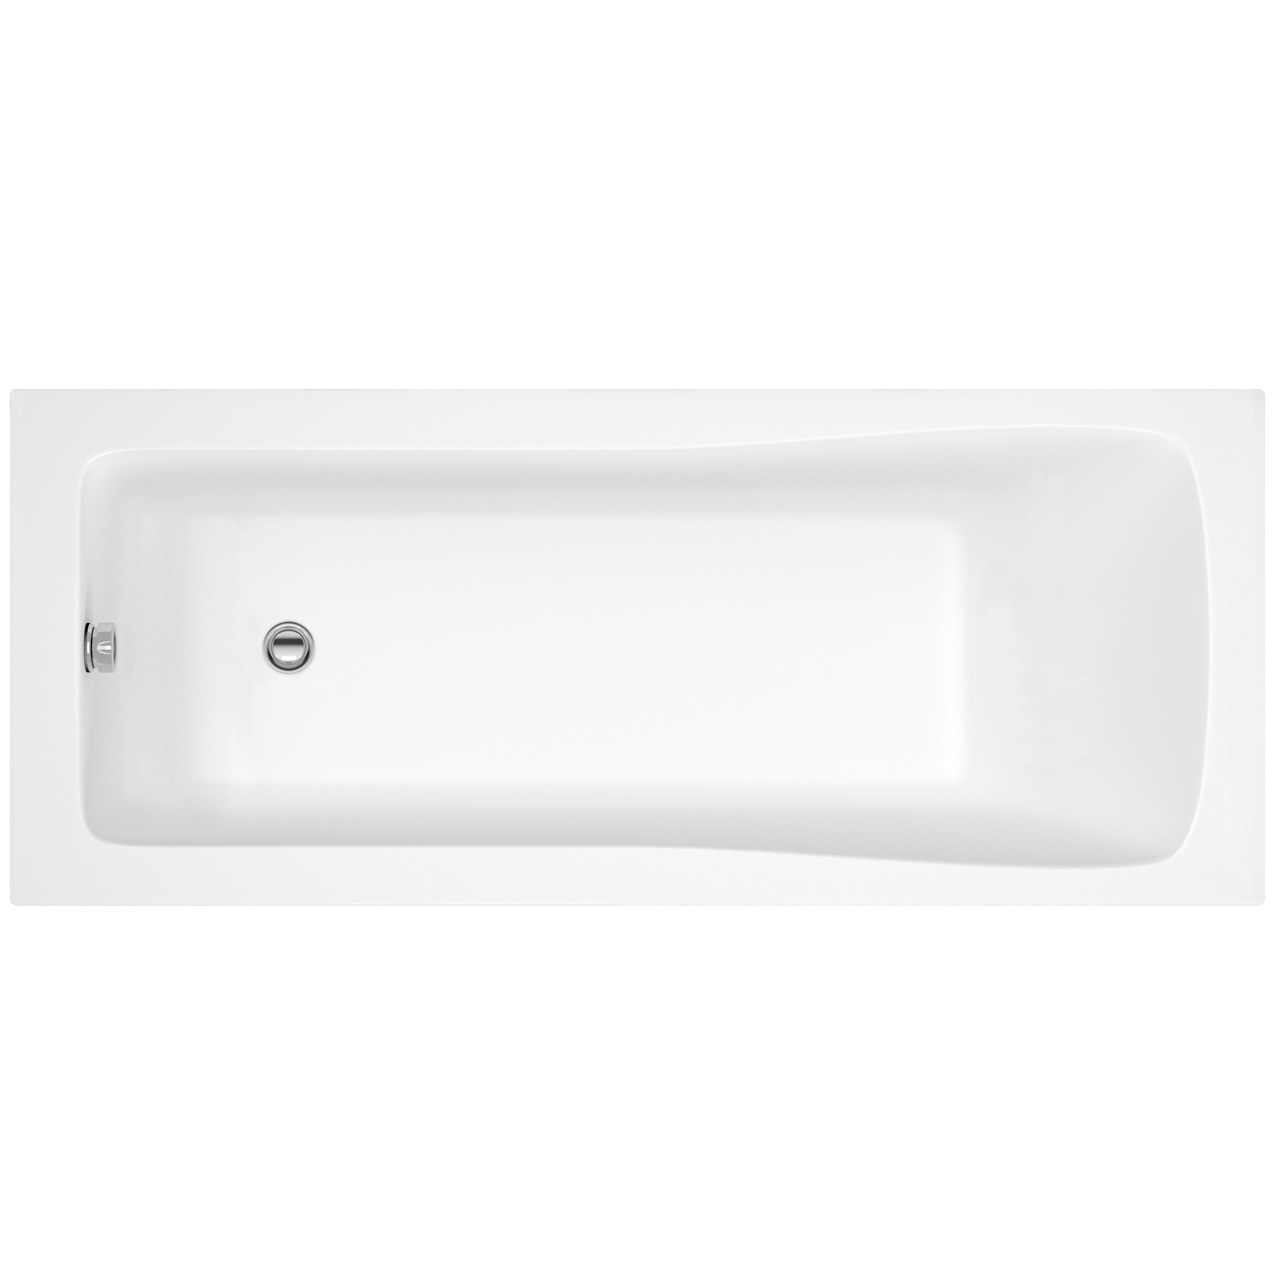 Nuie Linton 1700mm x 700mm Square Single Ended Bath - NBA409